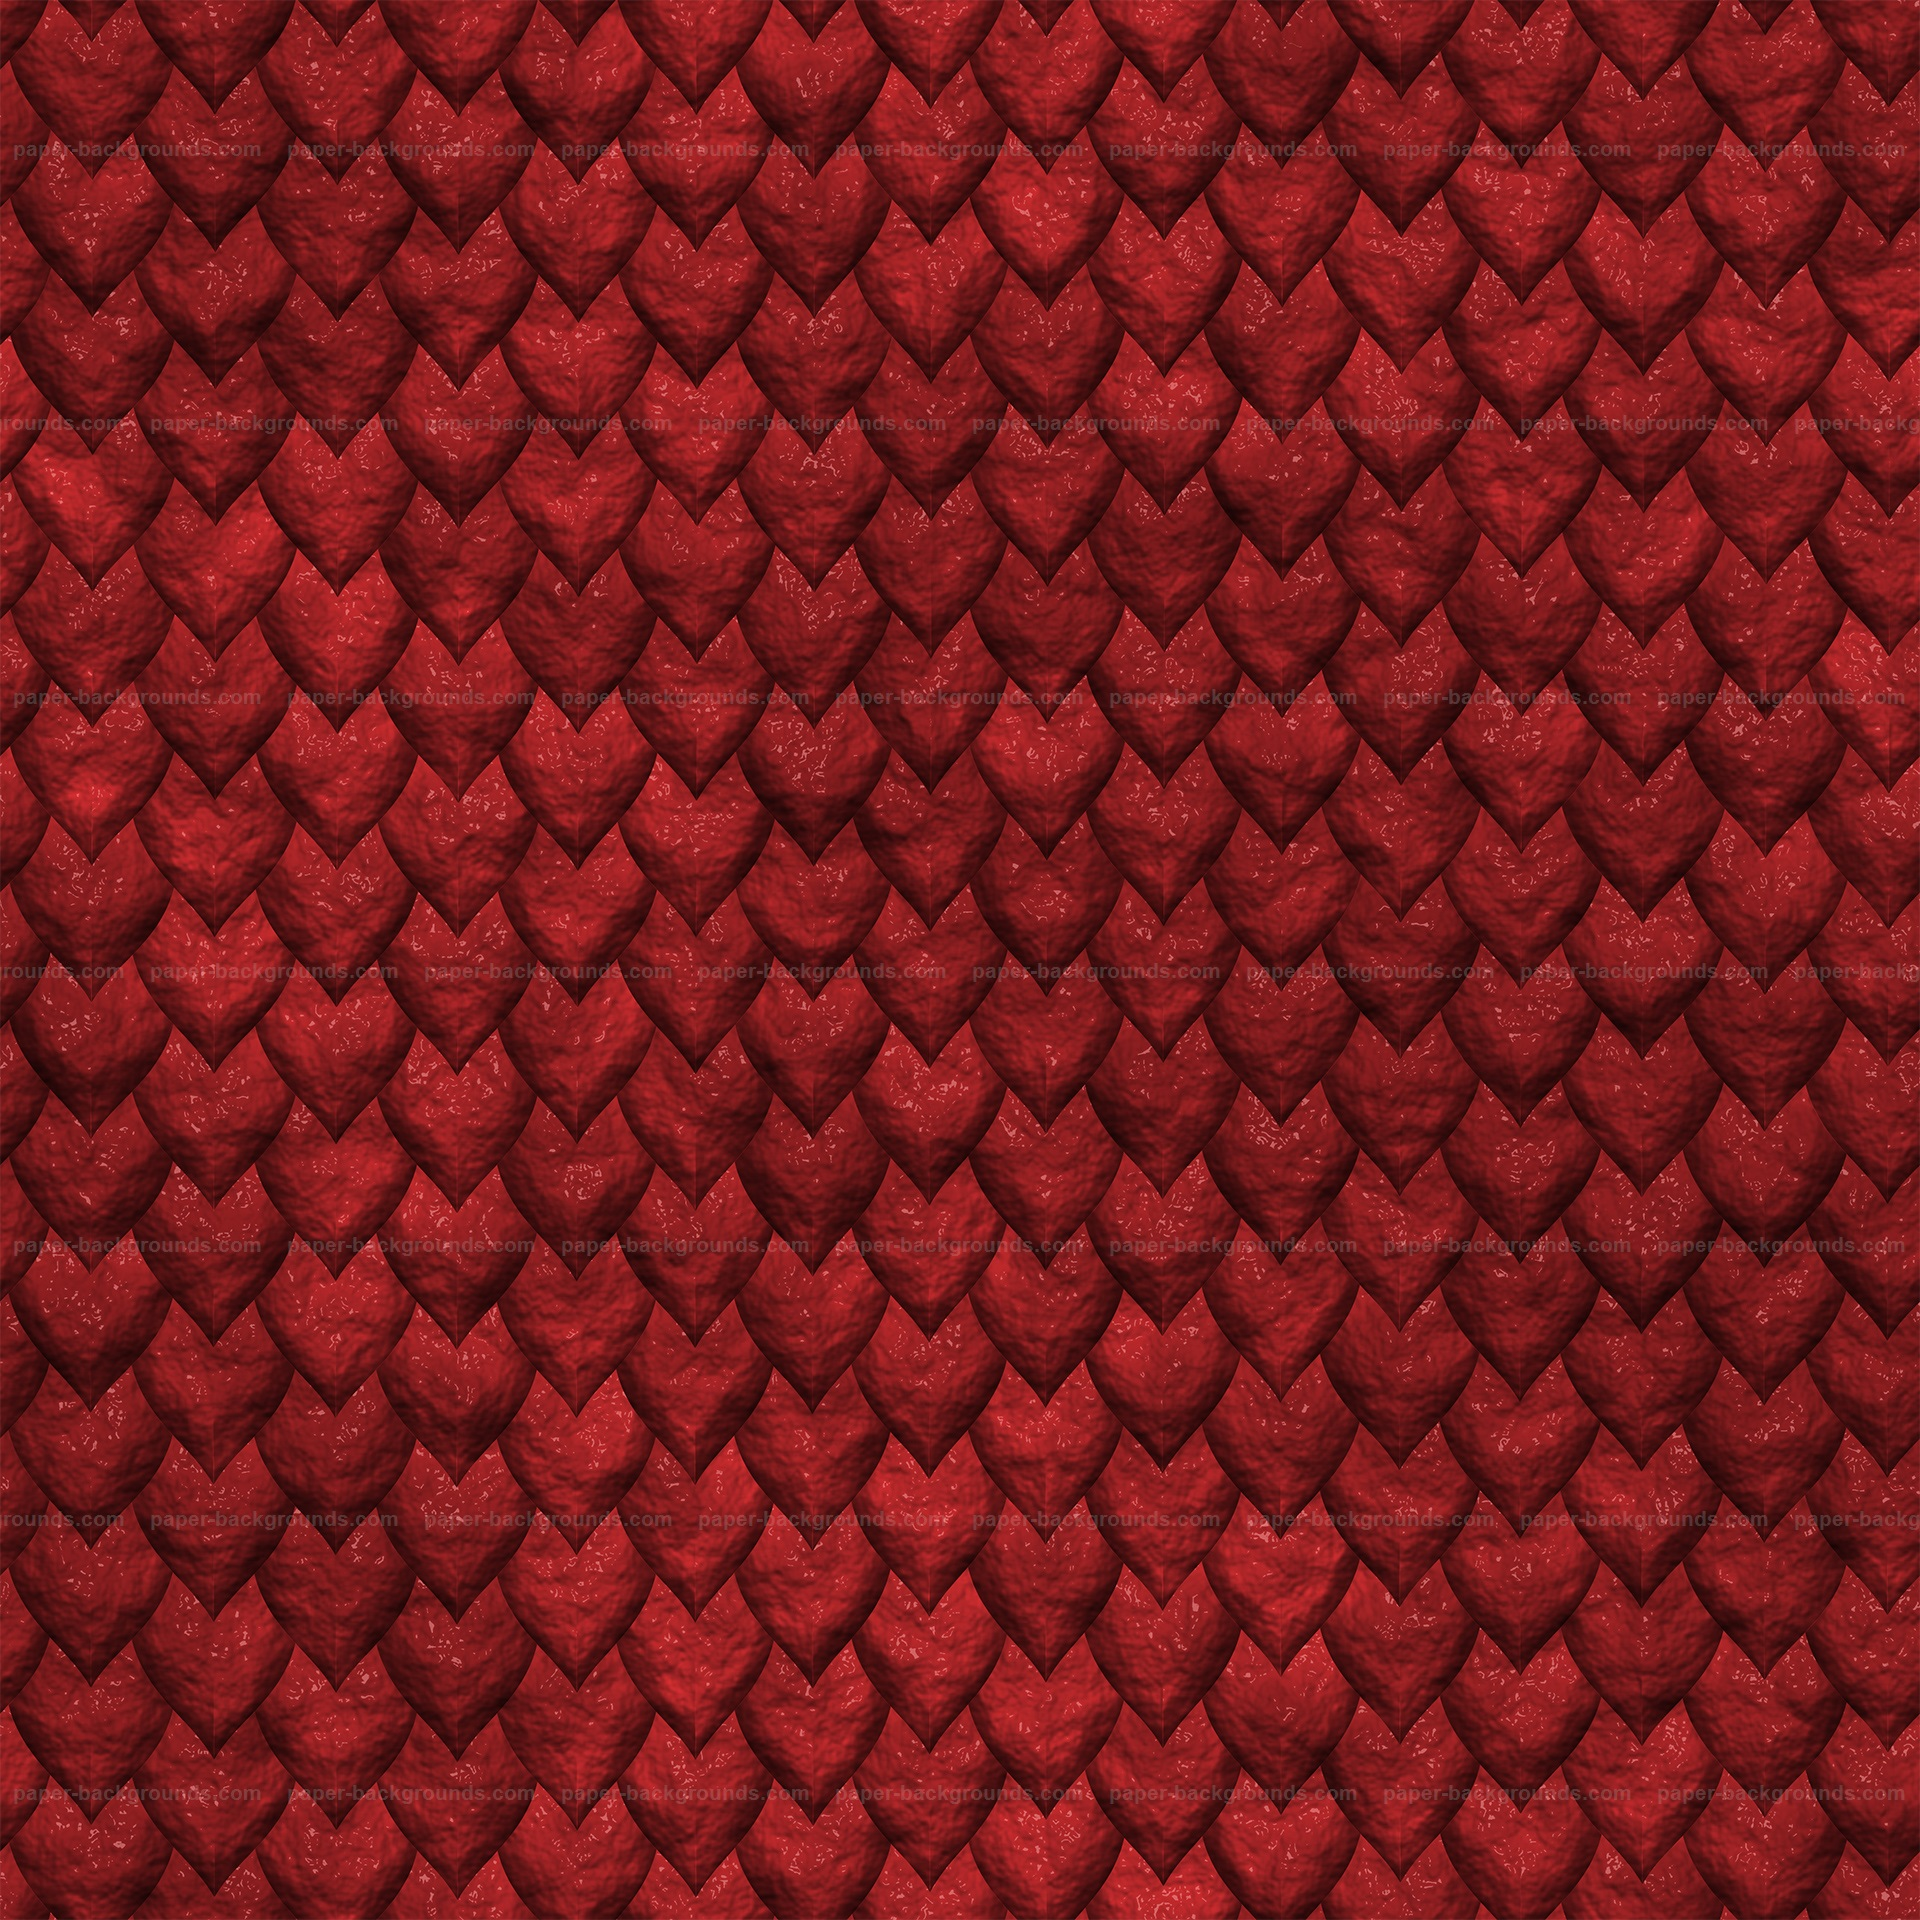 Black bed sheet texture seamless - Seamless Red Dragon Reptile Skin Texture Hd